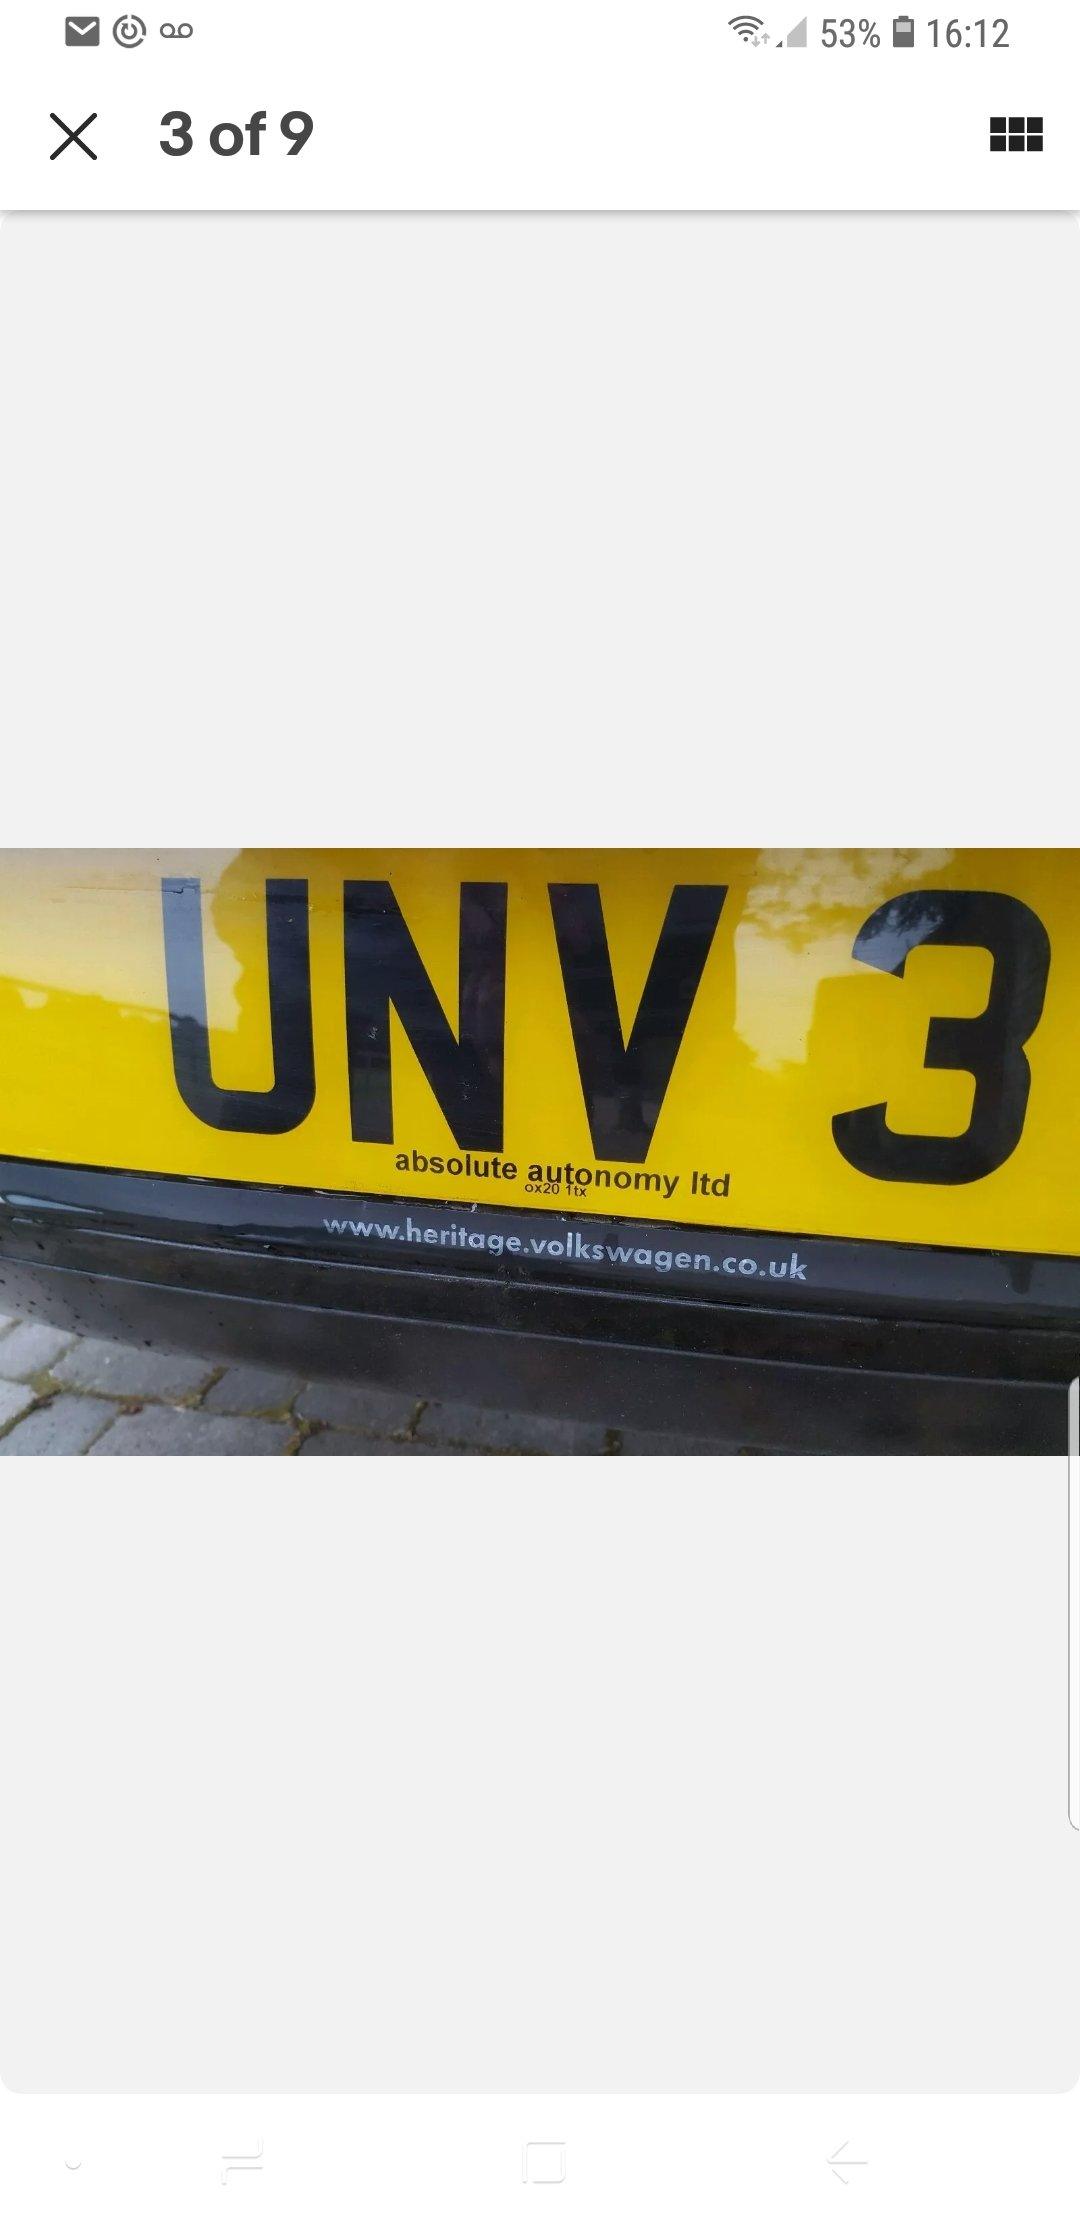 UNV 3 private plate UN V3 on retention Certificate